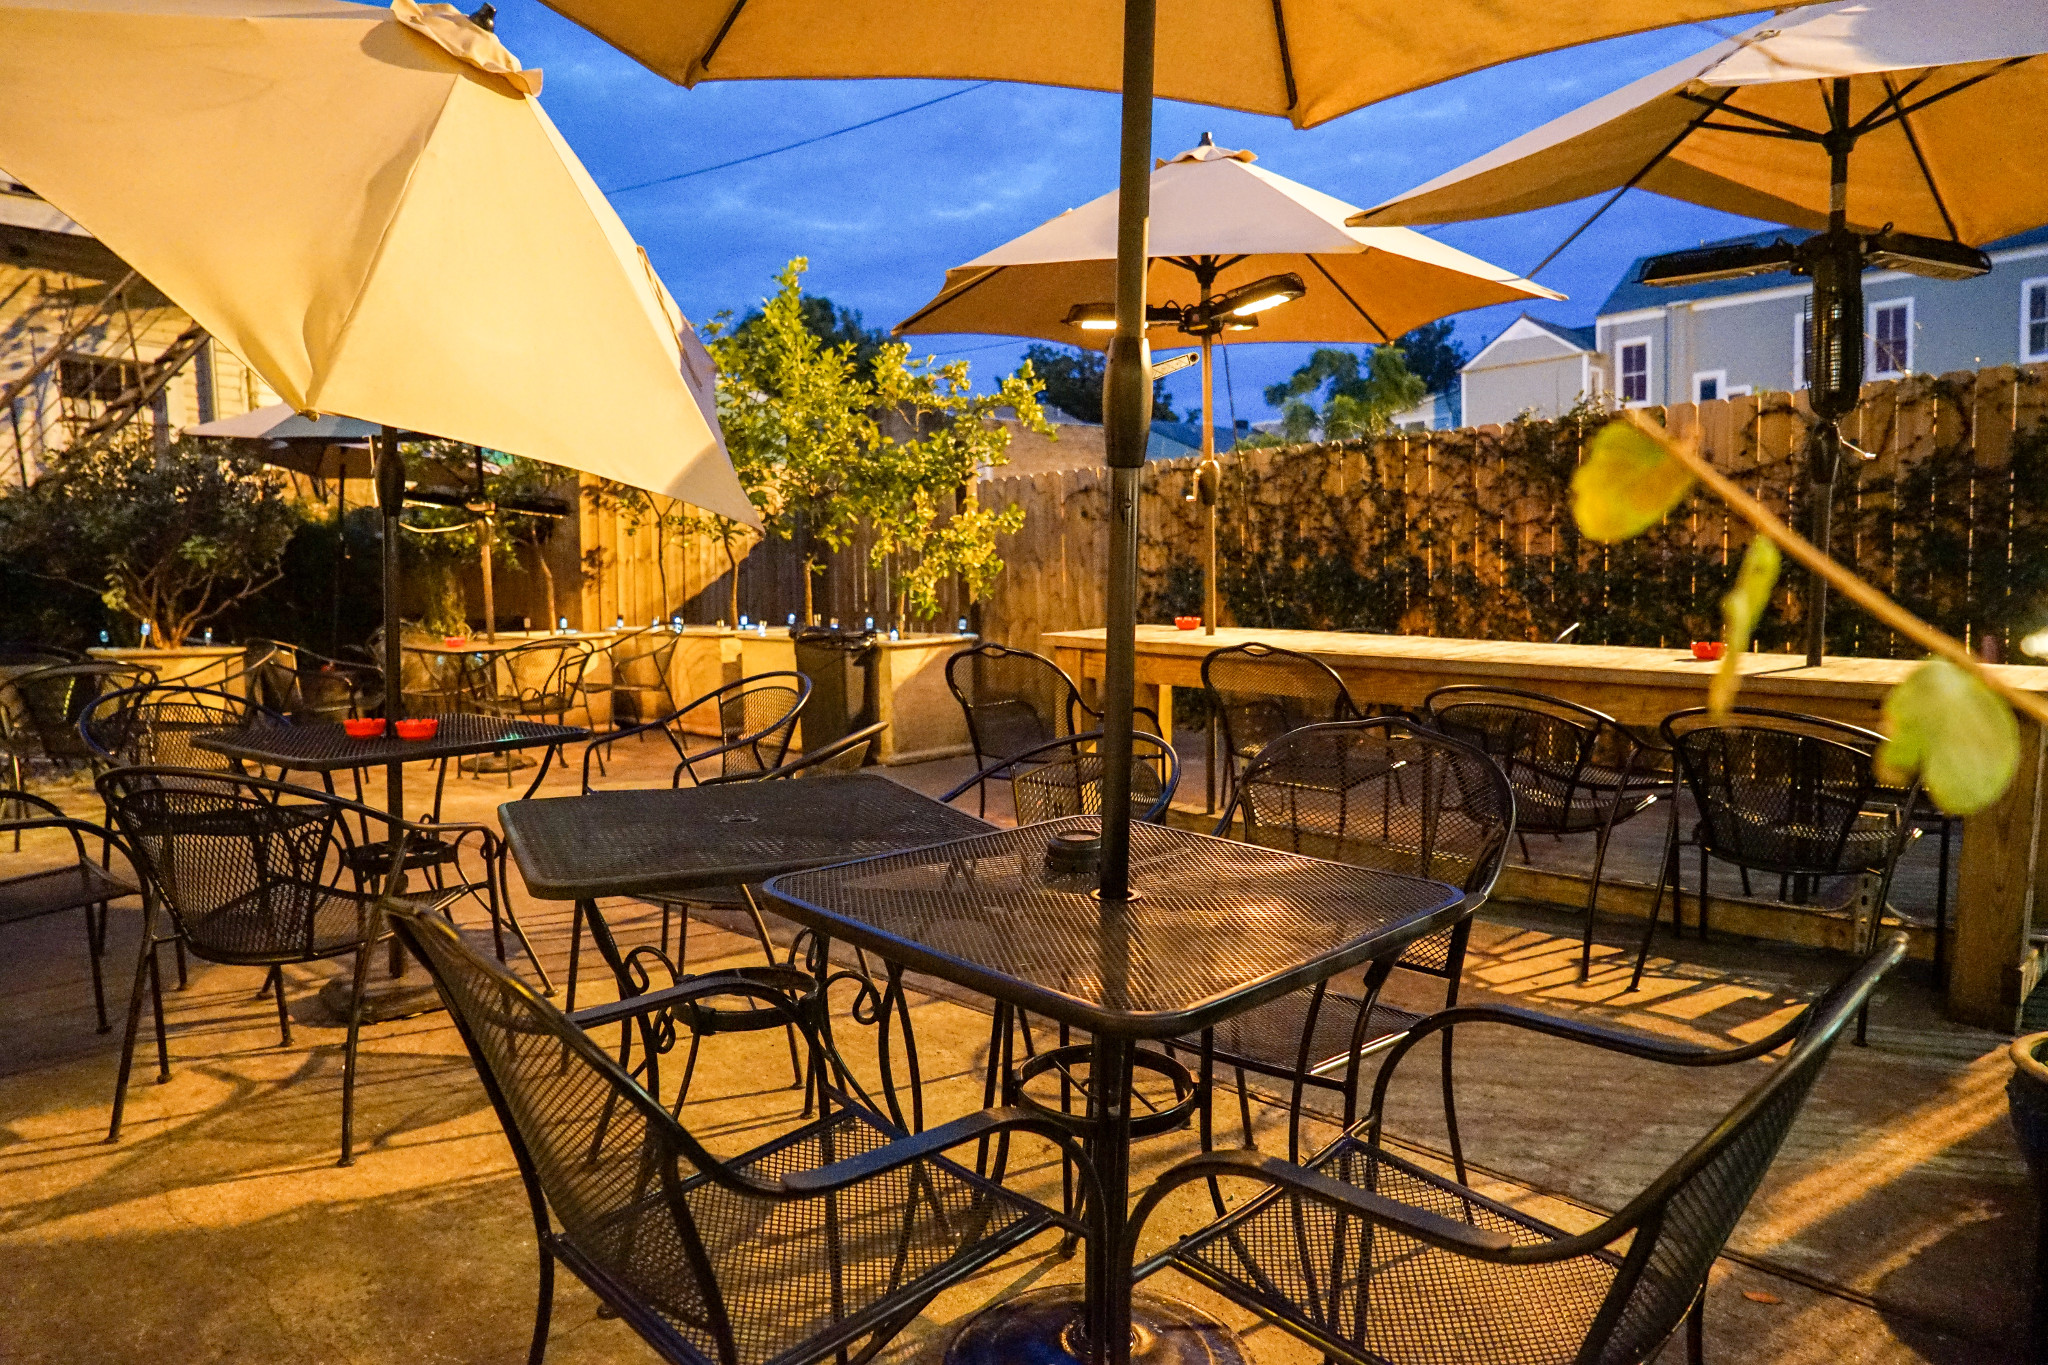 In addition to a balcony, the Avenue Pub also features a courtyard downstairs. (Photo: Paul Broussard)